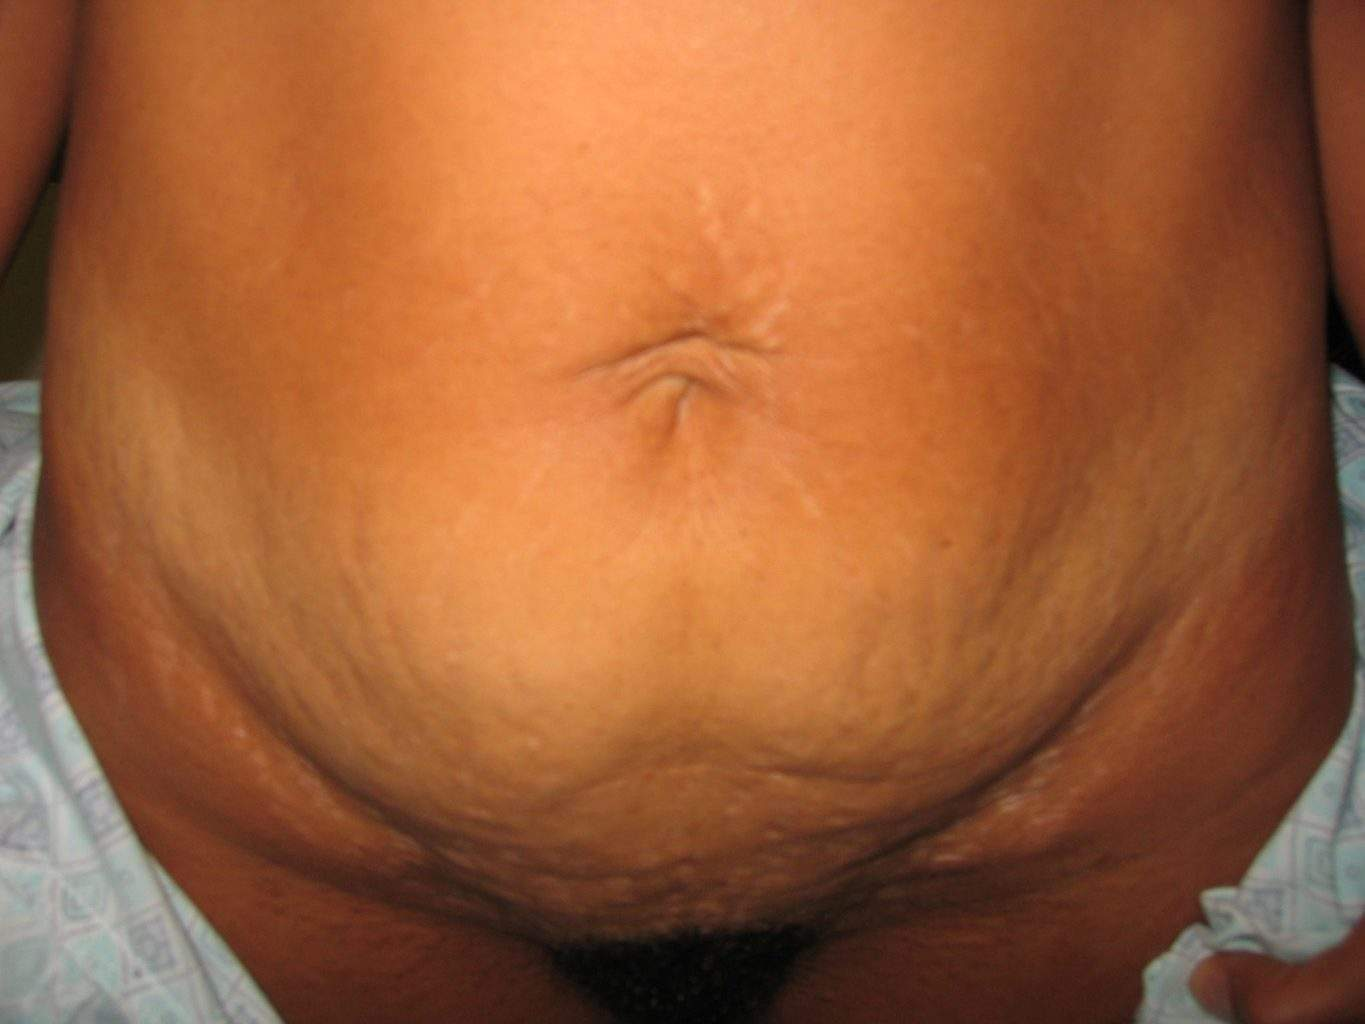 image of preop mini abdomioplasty tummy tuck mommy make over surgery by Dr. O'Sullivan